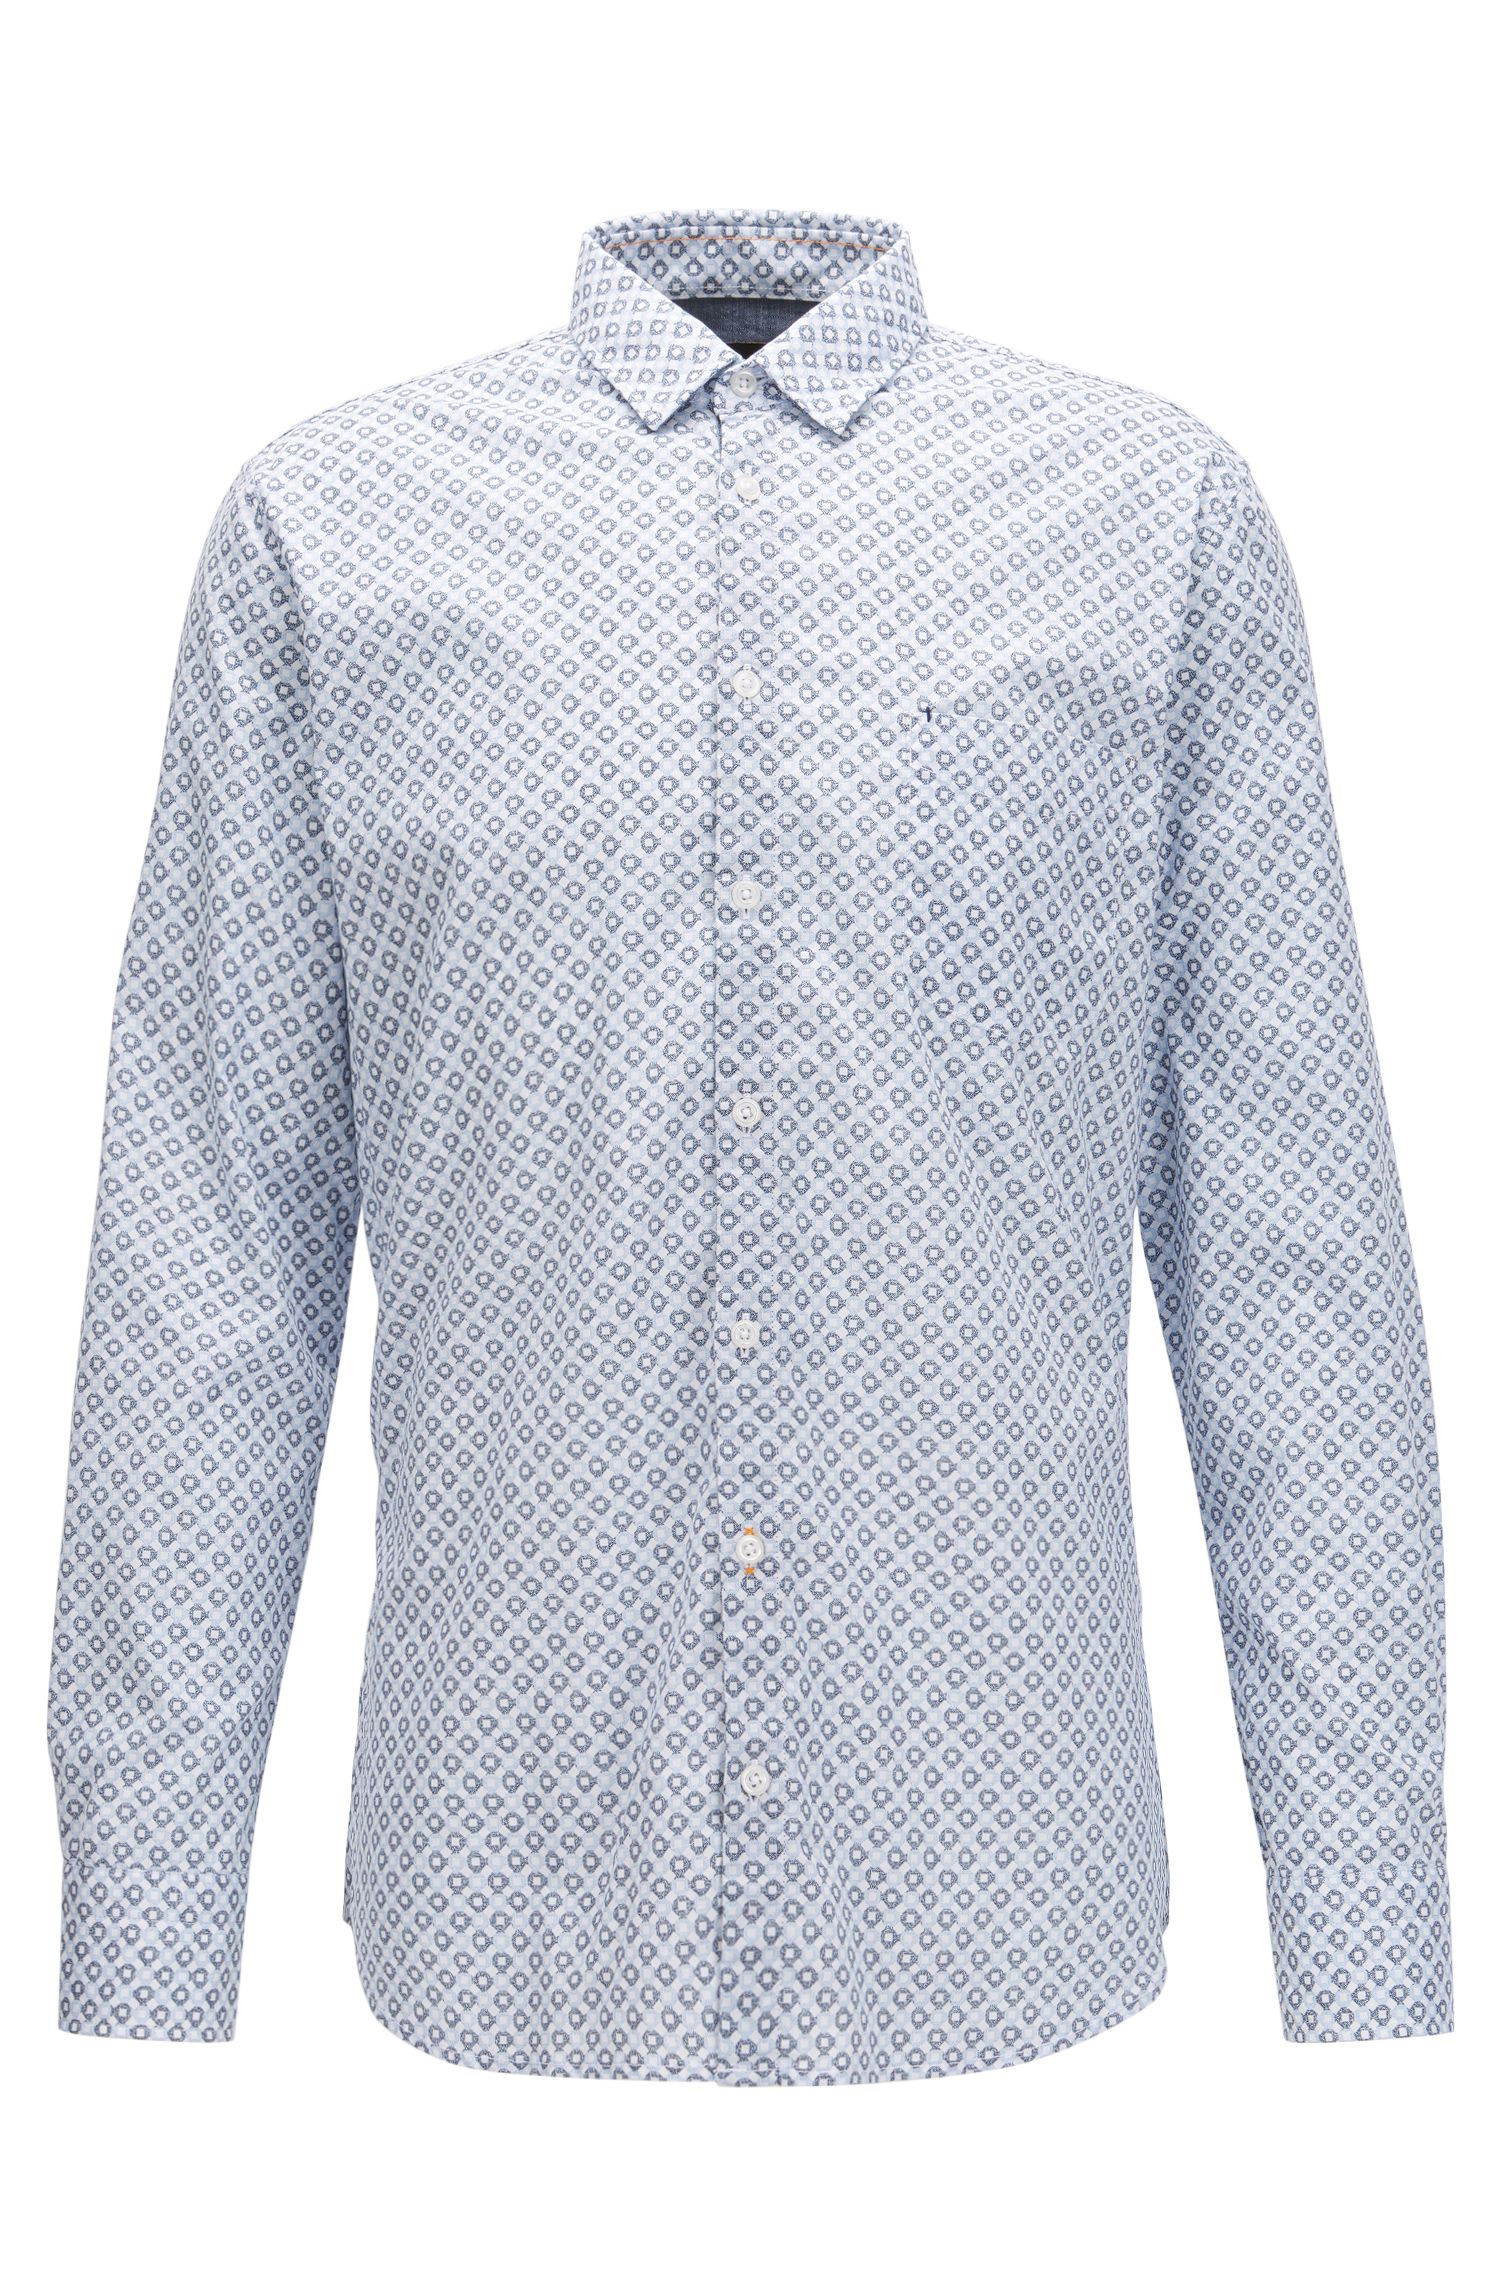 Slim-fit shirt in enzyme-washed stretch cotton